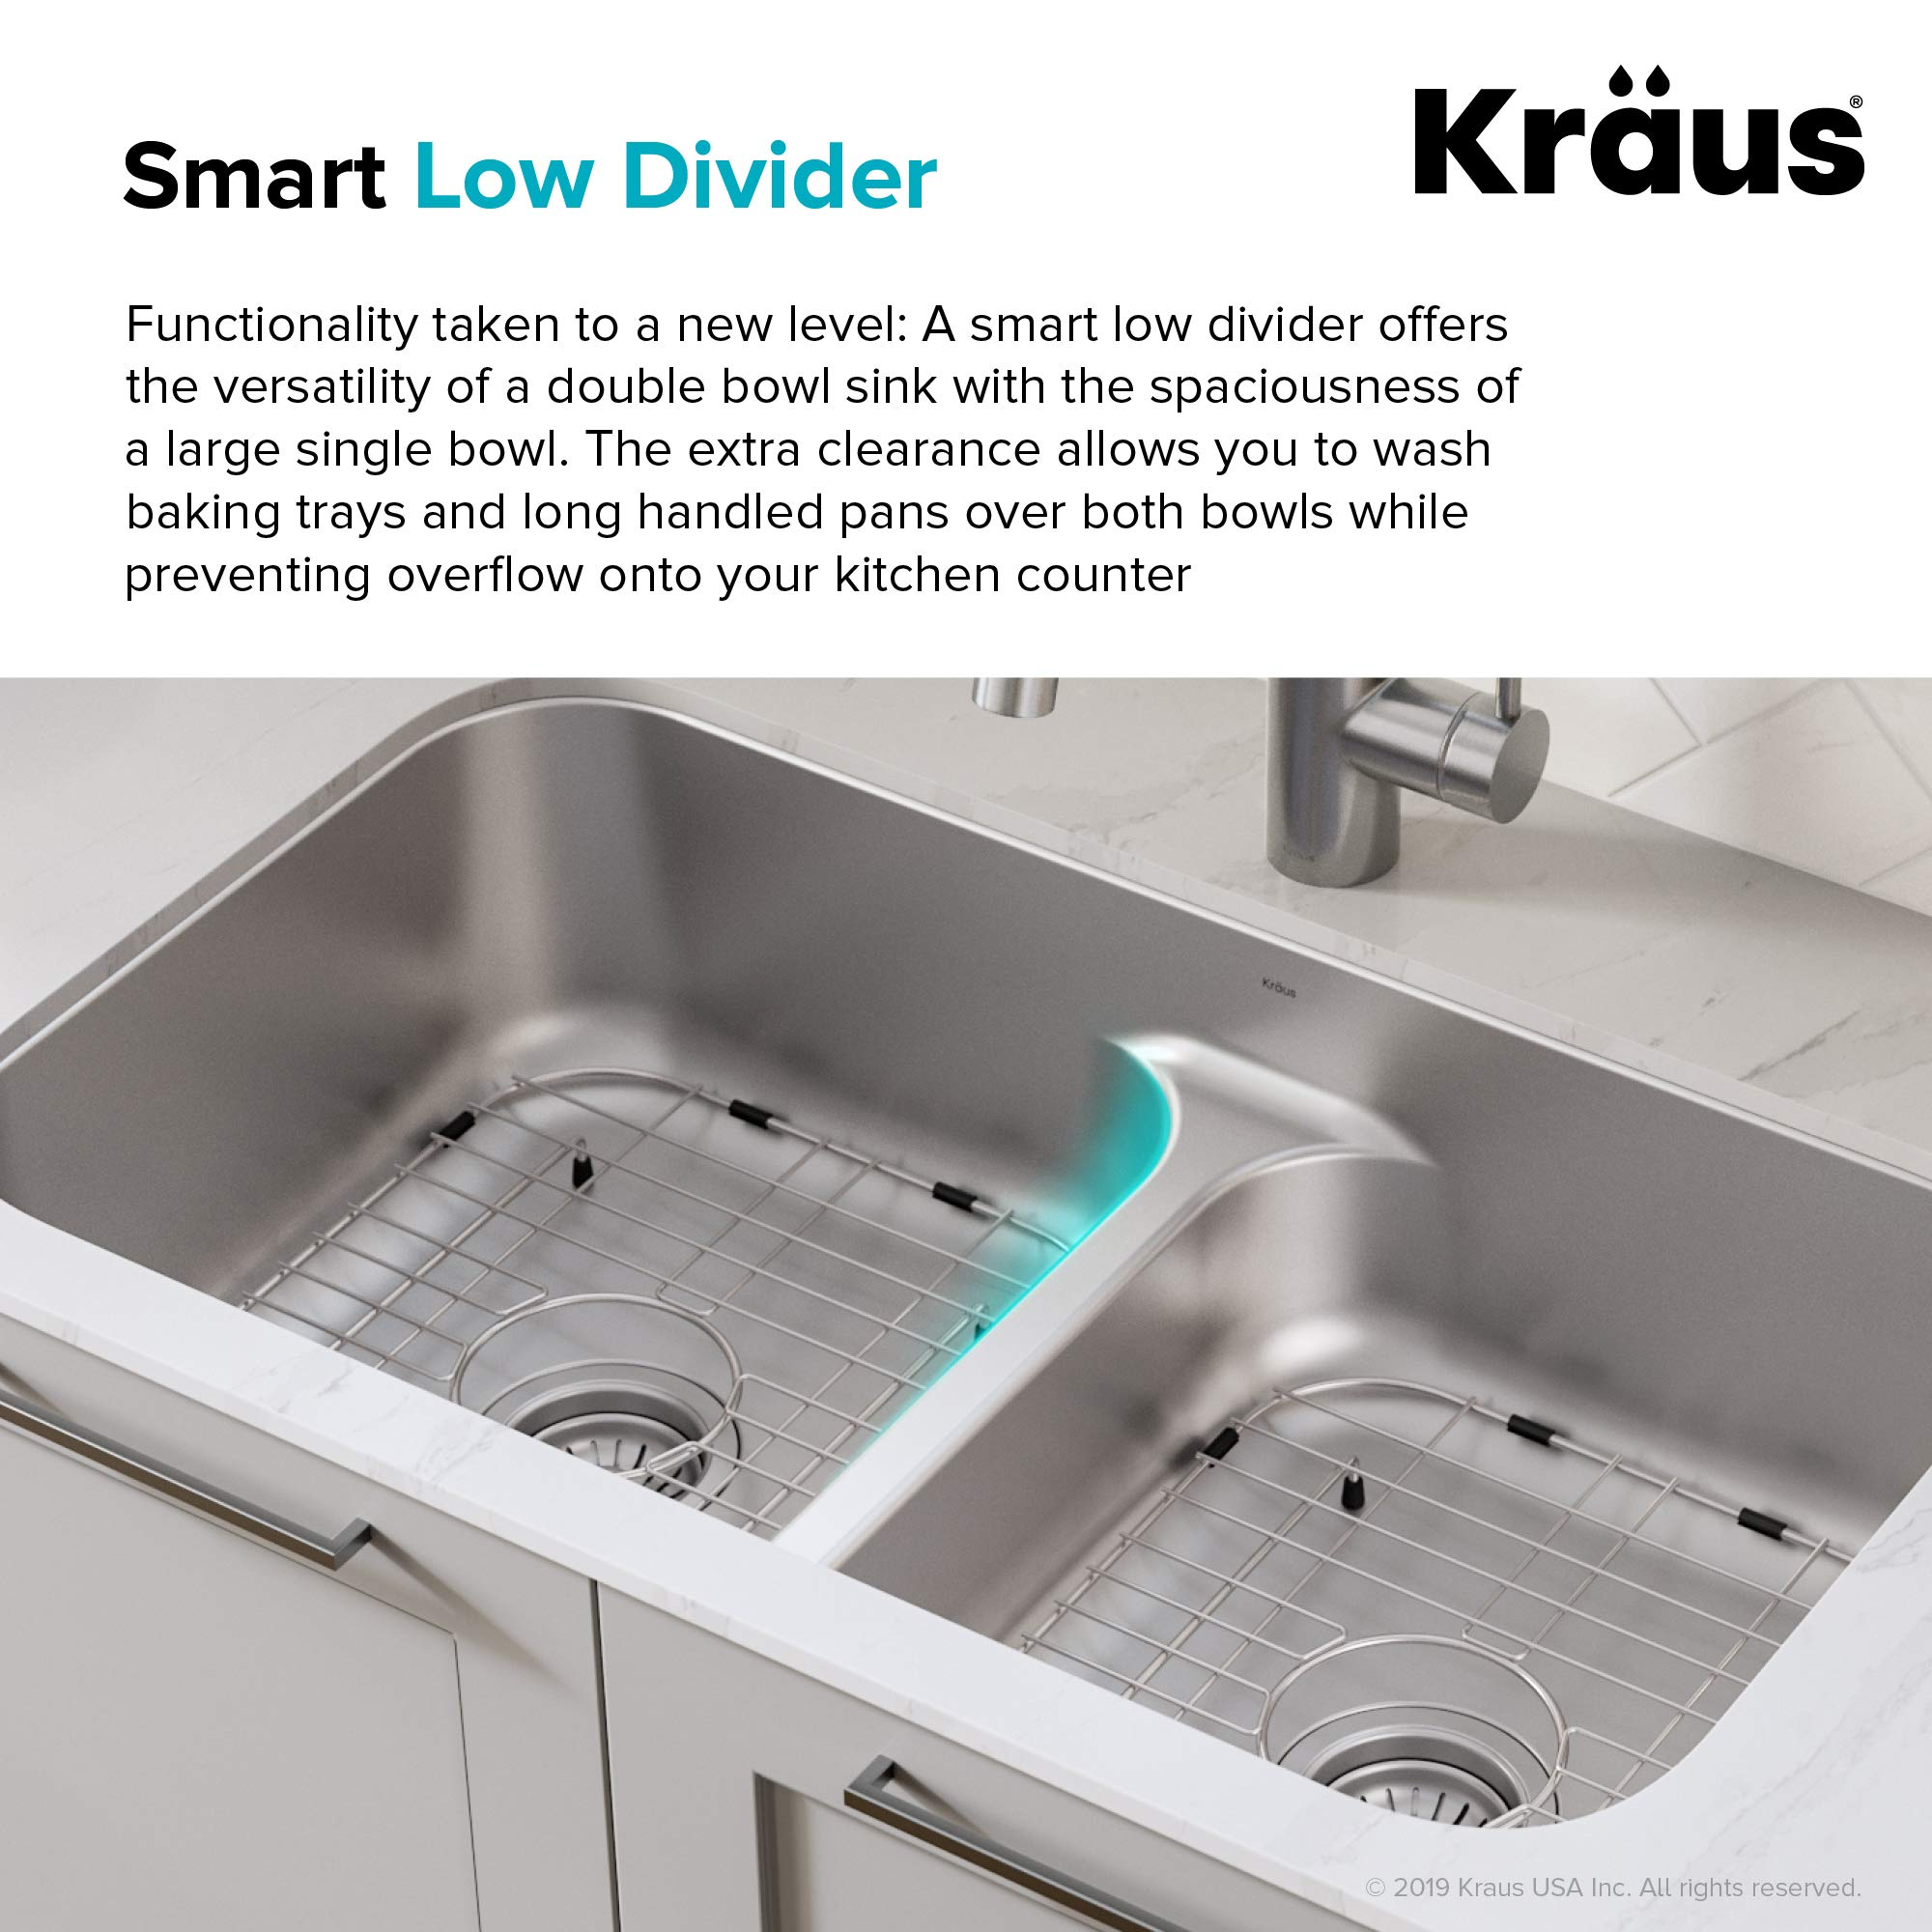 KRAUS KCA-1200 Ellis Kitchen Combo Set with 33-inch 16 Gauge Undermount Kitchen Sink and Bolden 18-inch Pull-Down Commercial Style Kitchen Faucet, Stainless Steel Finish by Kraus (Image #6)